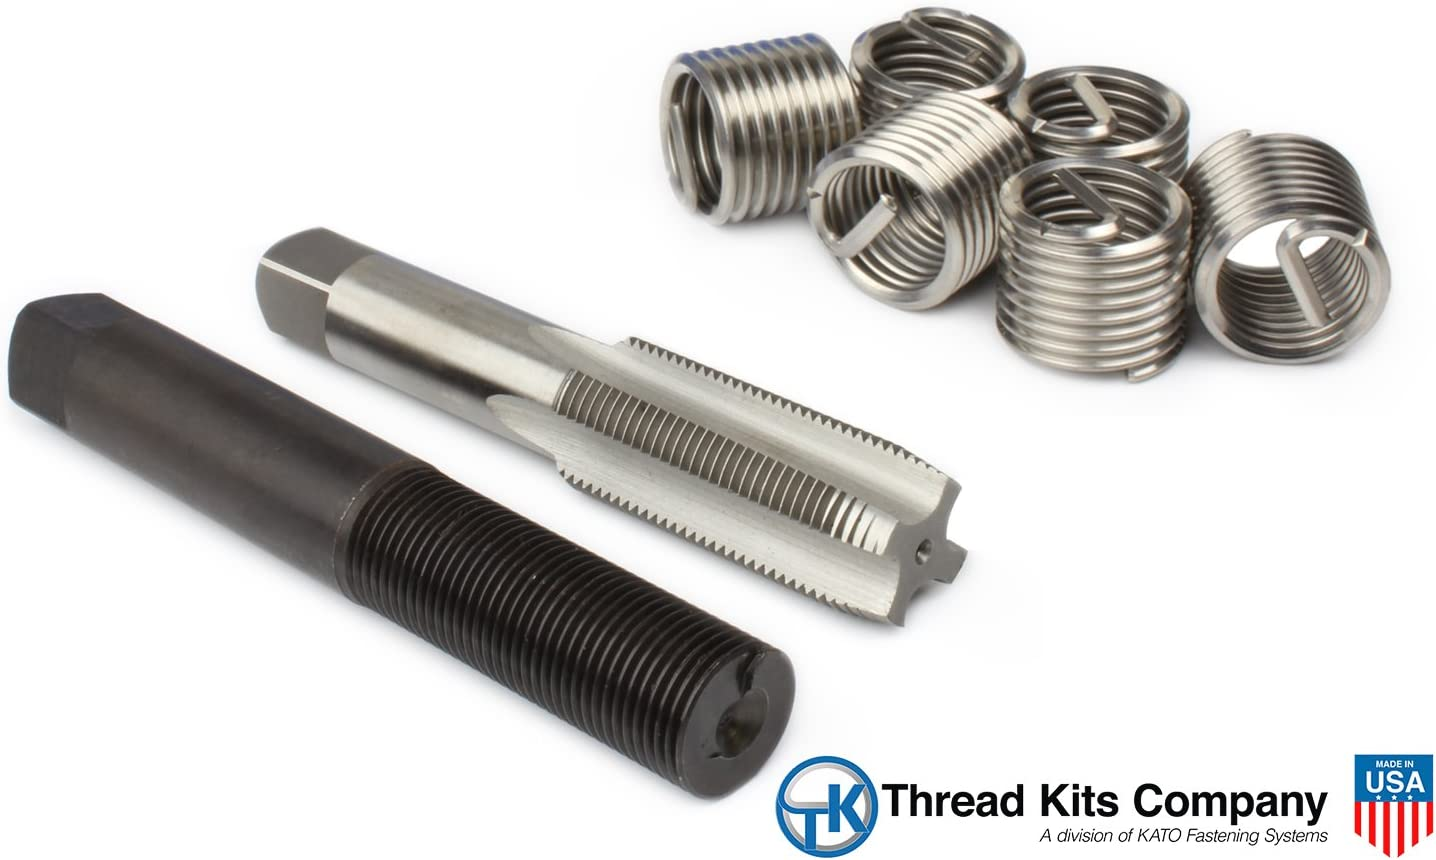 30 mm Installed Length M20-2.0 Thread Size PowerCoil 3521-20.00K Metric Free Running Coil Threaded Insert Kit 304 Stainless Steel